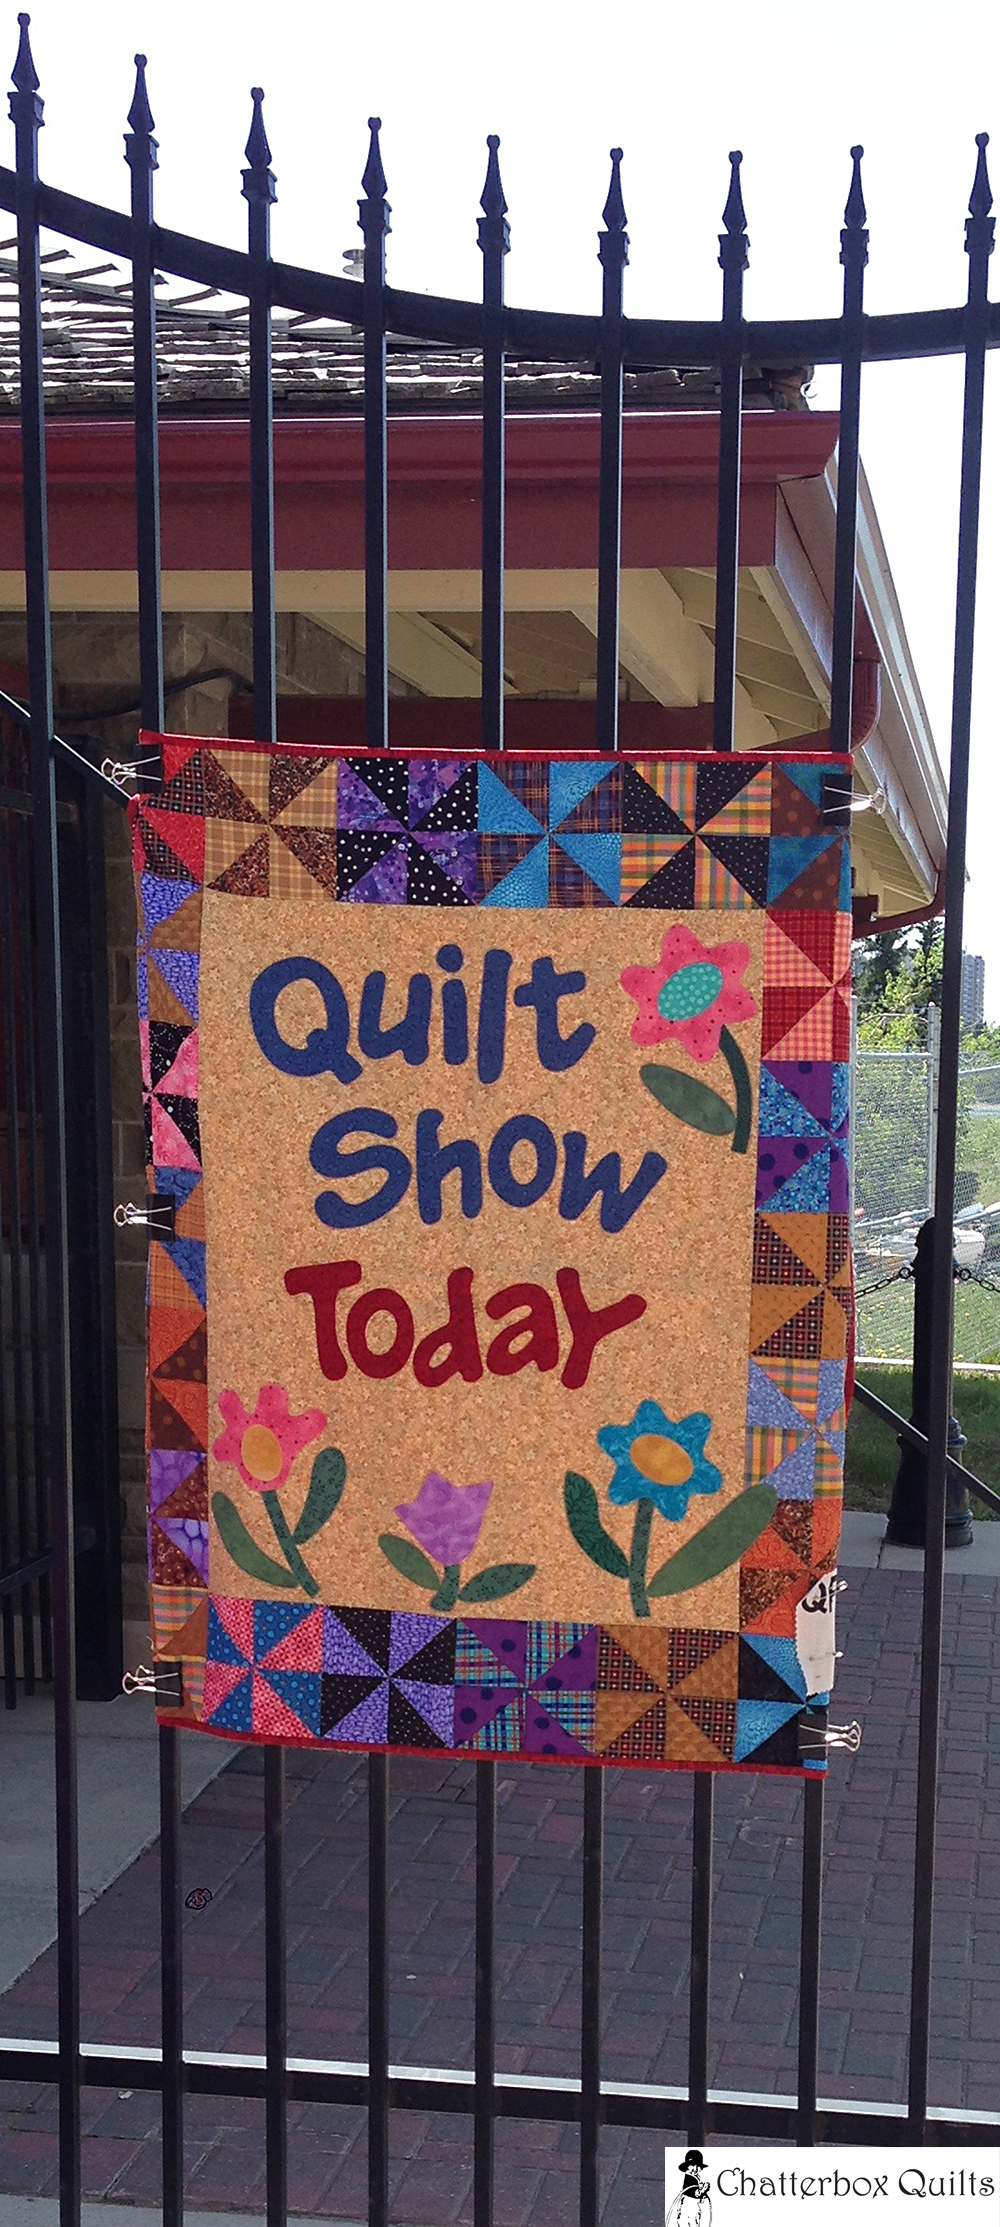 In case you couldn't tell there was a quilt show on that day